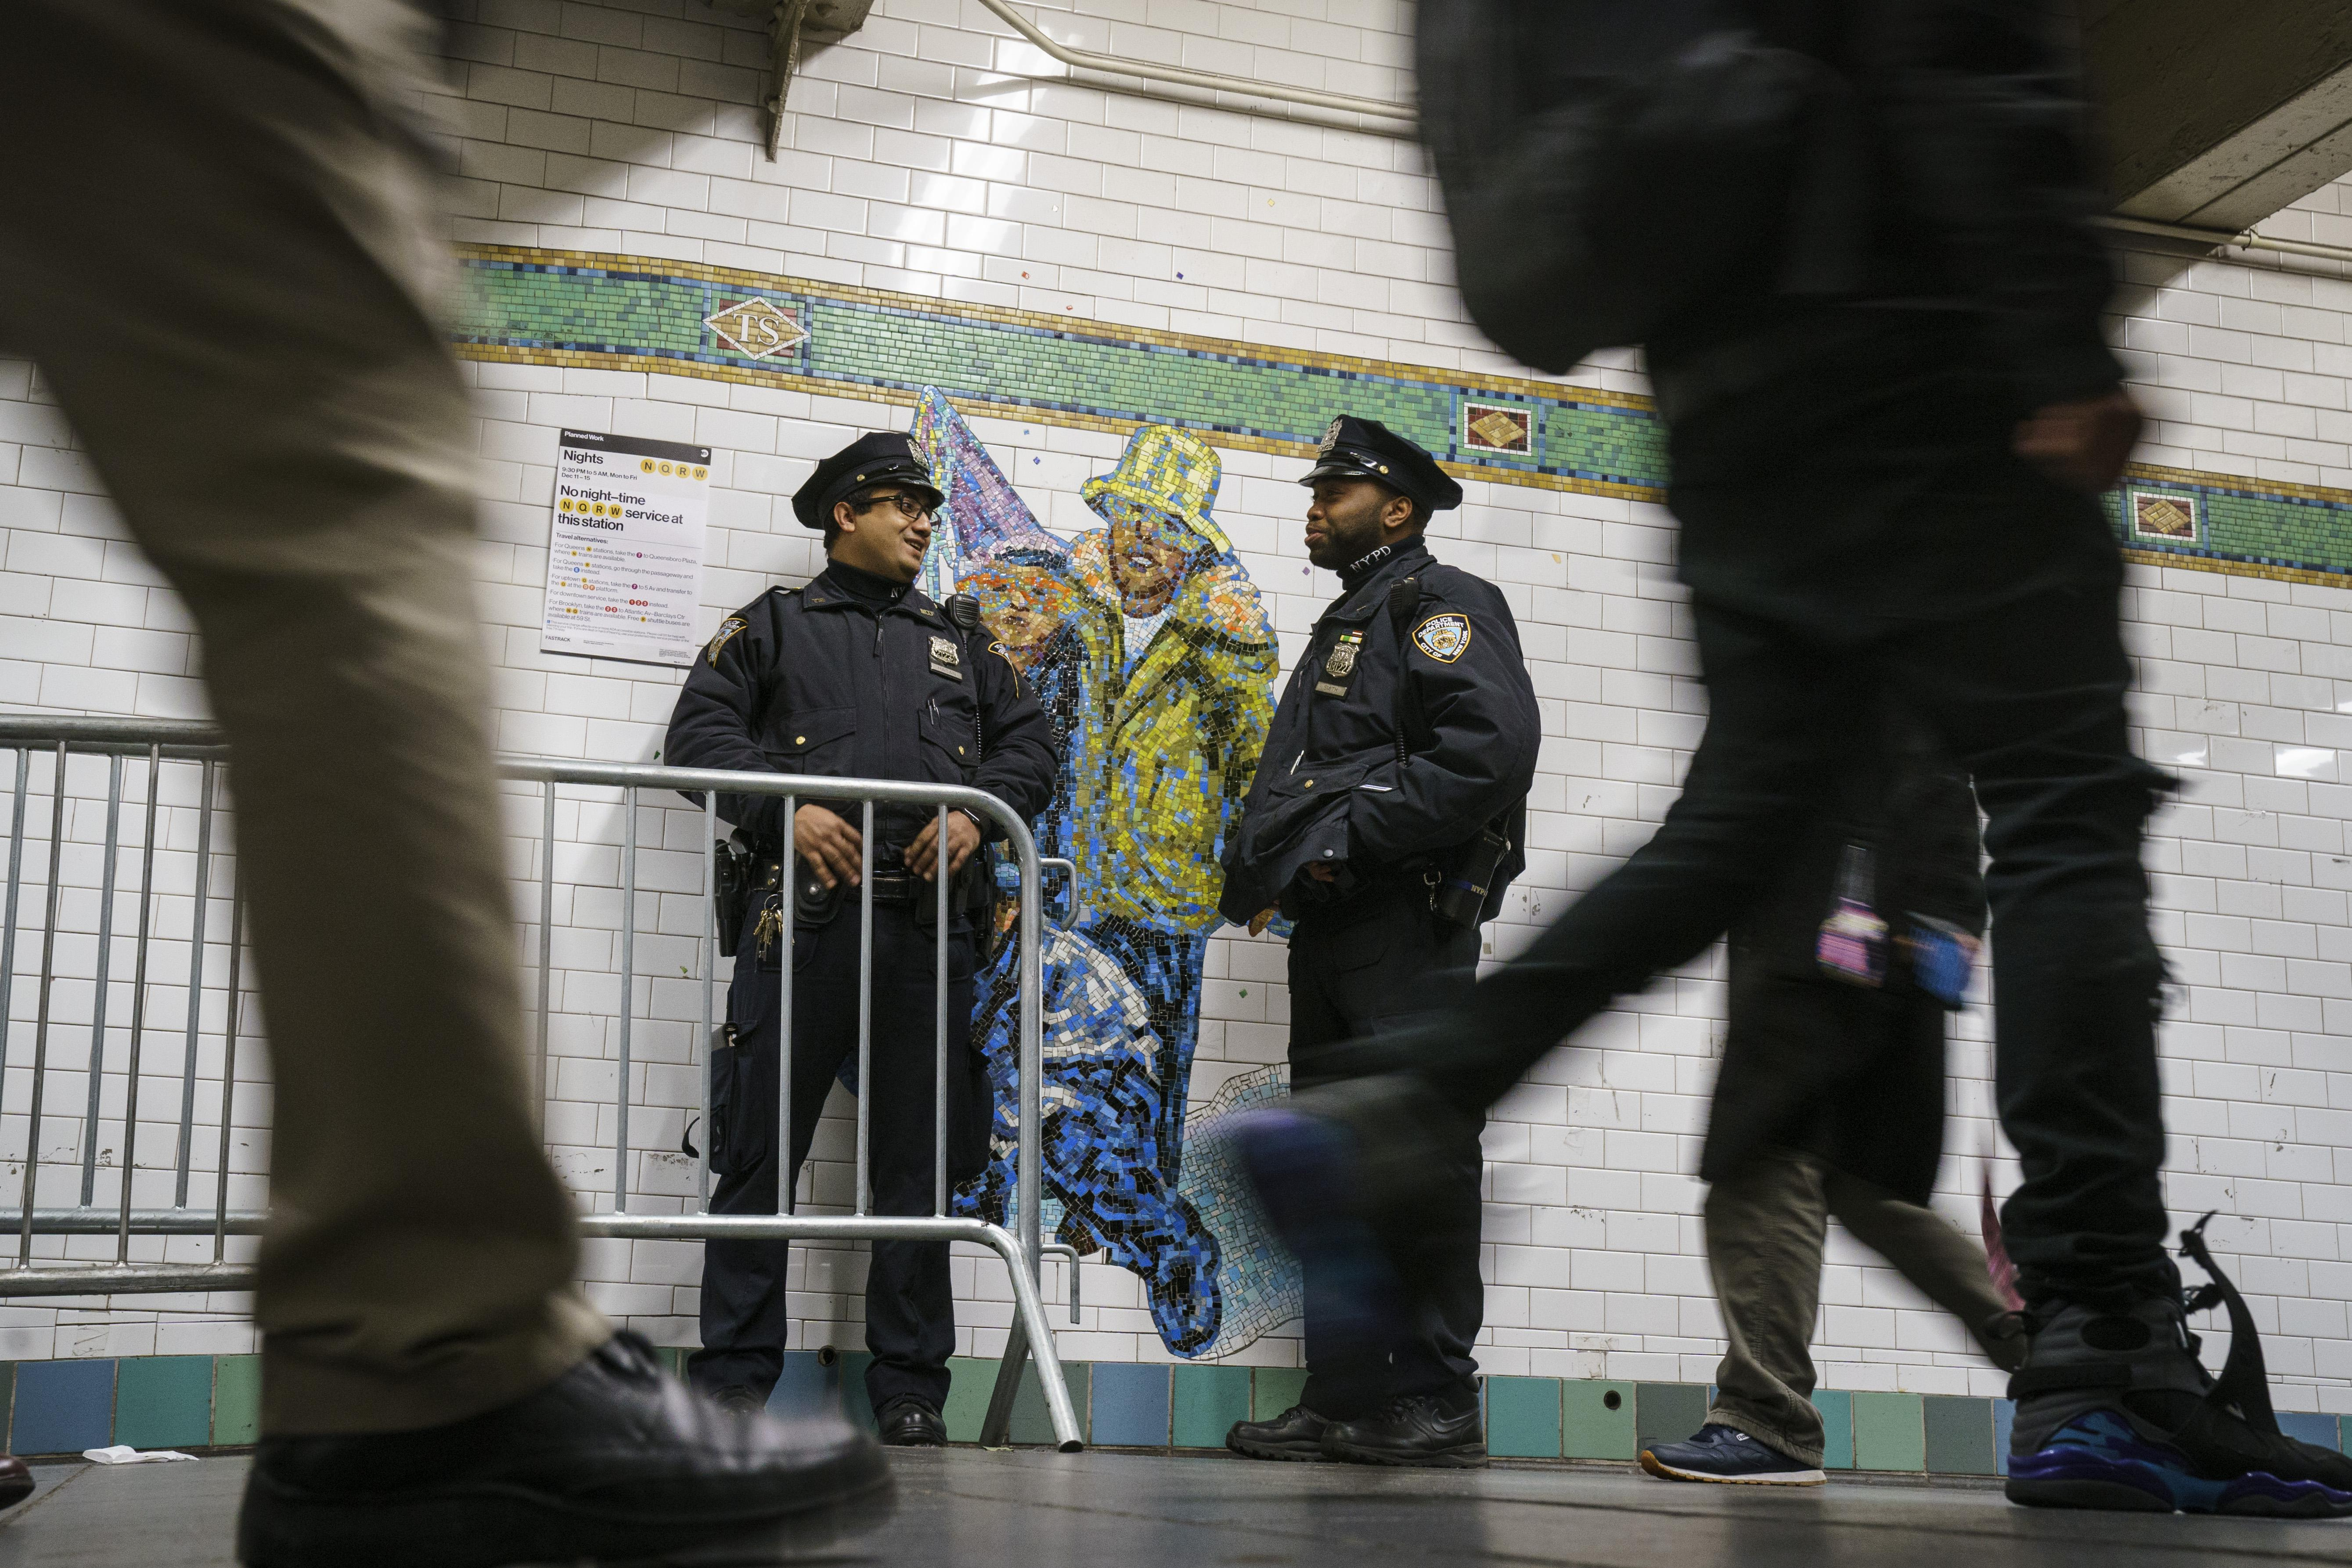 NEW YORK, NY - DECEMBER 12: Police officers stand guard as commuters make their way through the passageway connecting the Times Square subway station to the Port Authority subway station and bus terminal, near the site of Monday morning's attempted terror attack, December 12, 2017 in New York City.  Akayed Ullah is in custody for an attempted terror attack after an explosion in a passageway linking the Port Authority Bus Terminal with the subway during rush hour. (Photo by Drew Angerer/Getty Images)